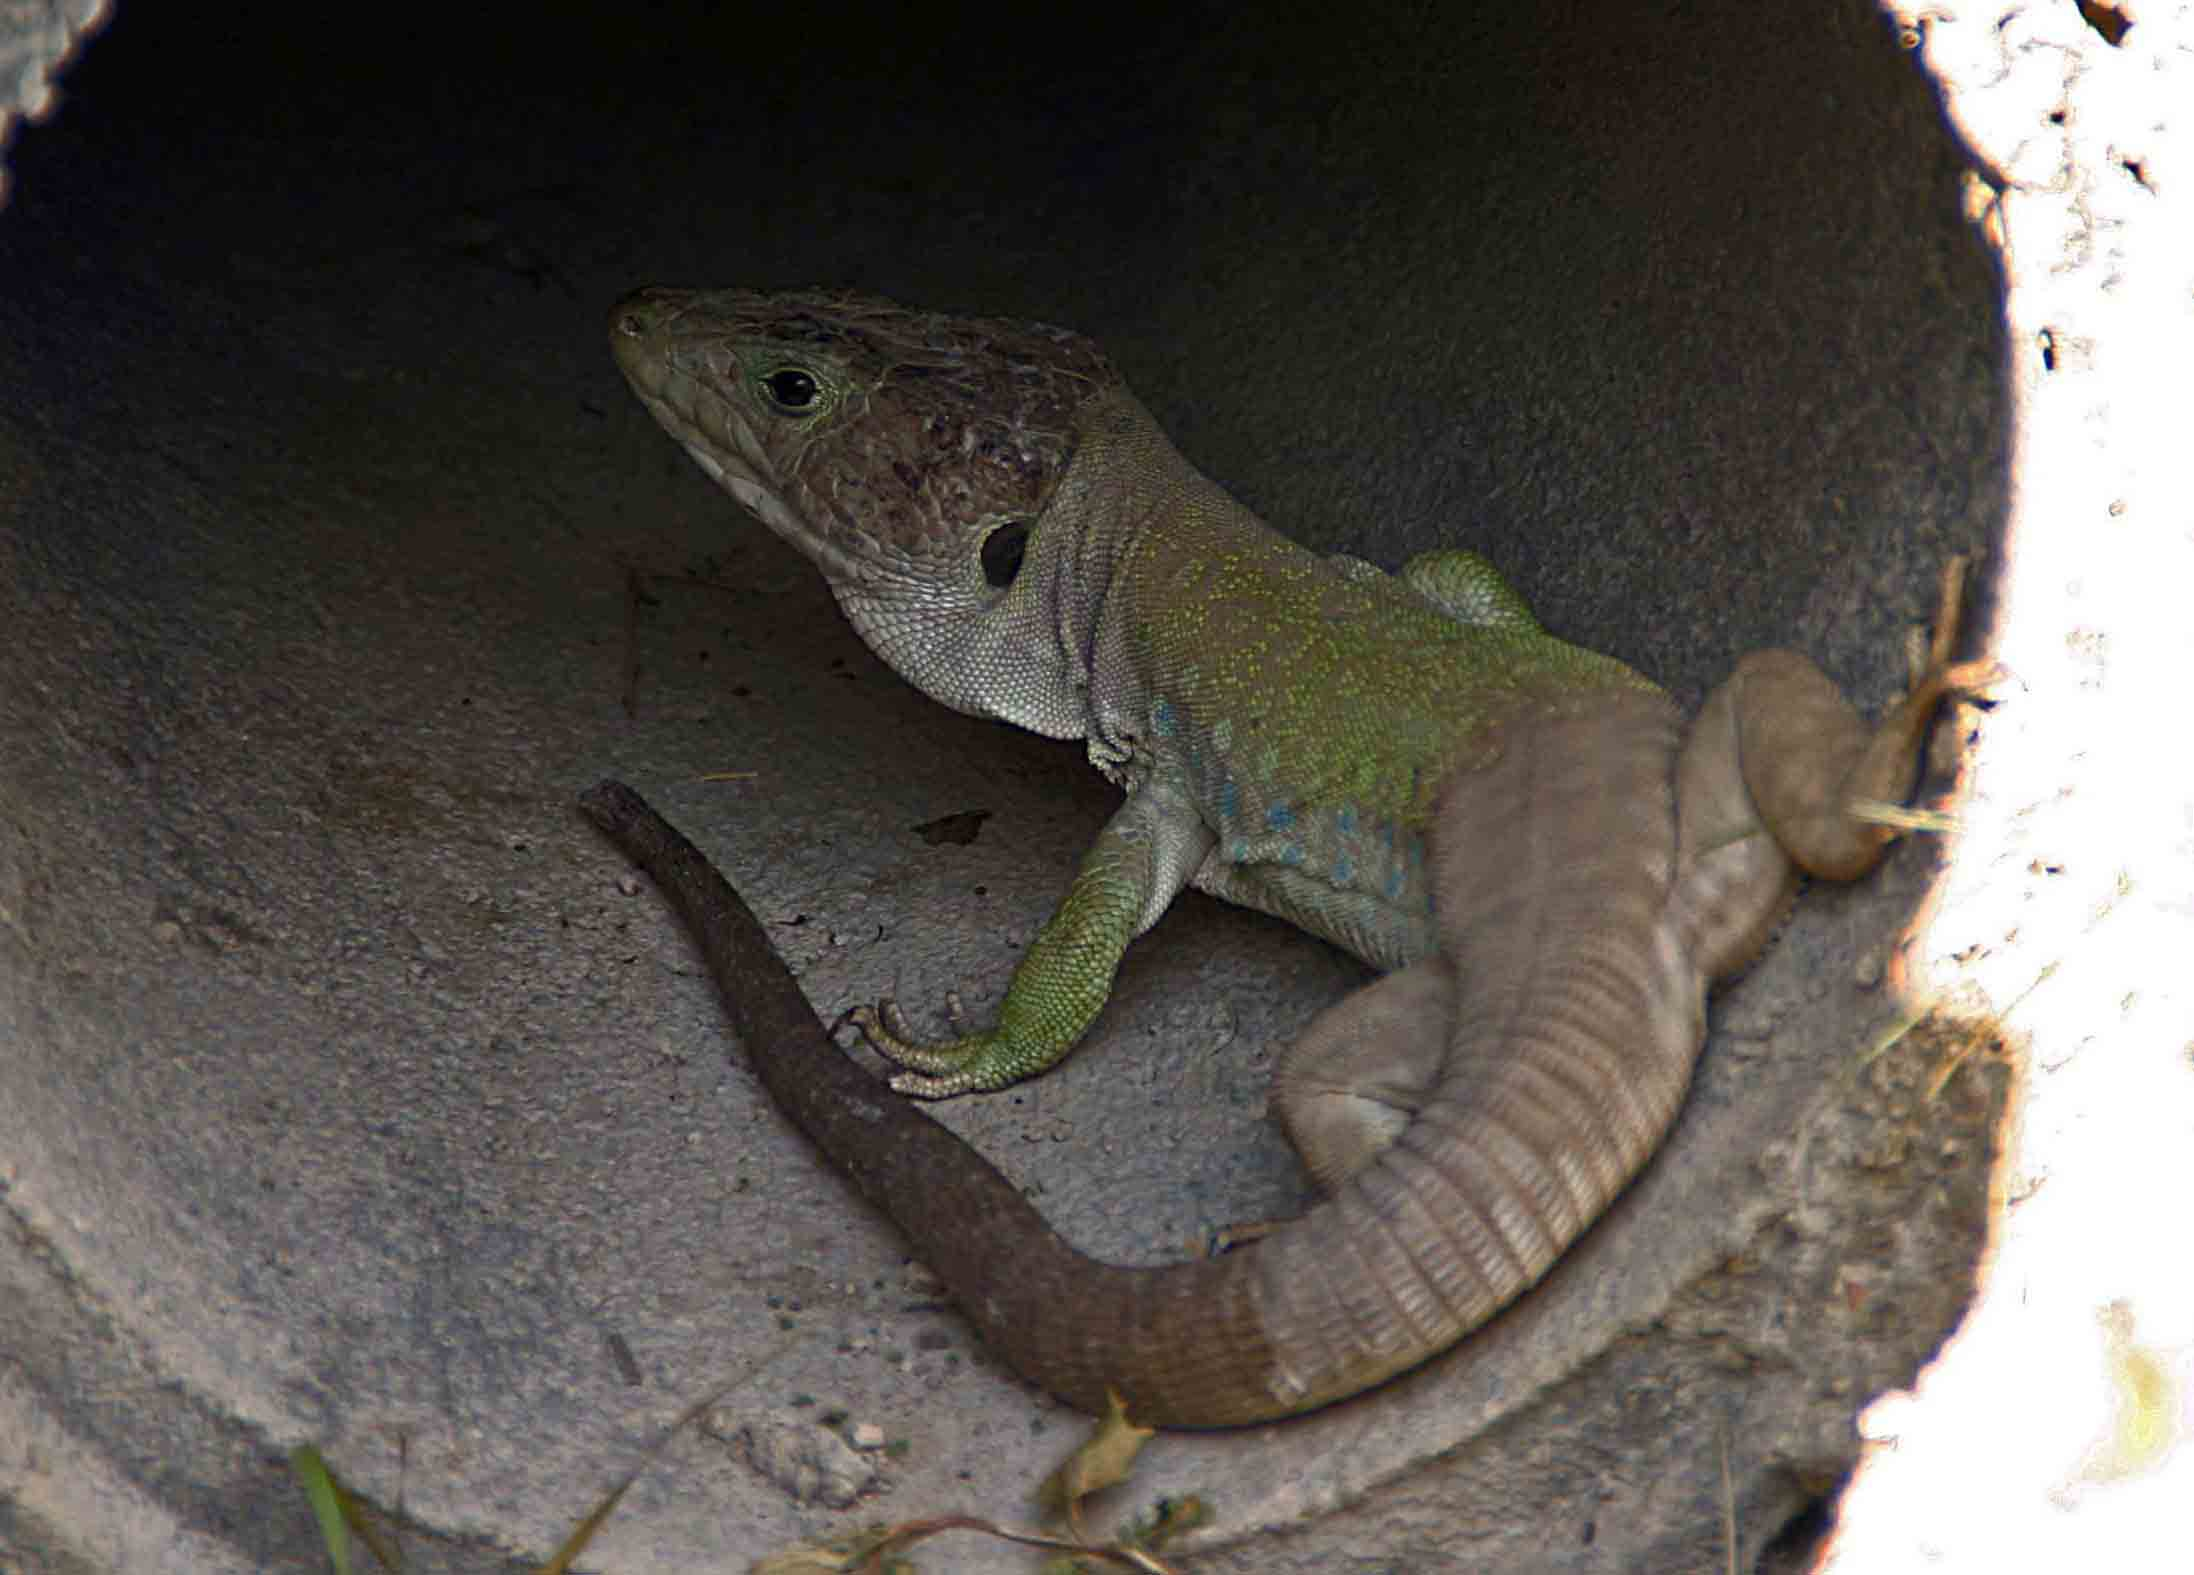 Home to the largest lizard in Europe: Ocellated lizard (Timon lepidus)